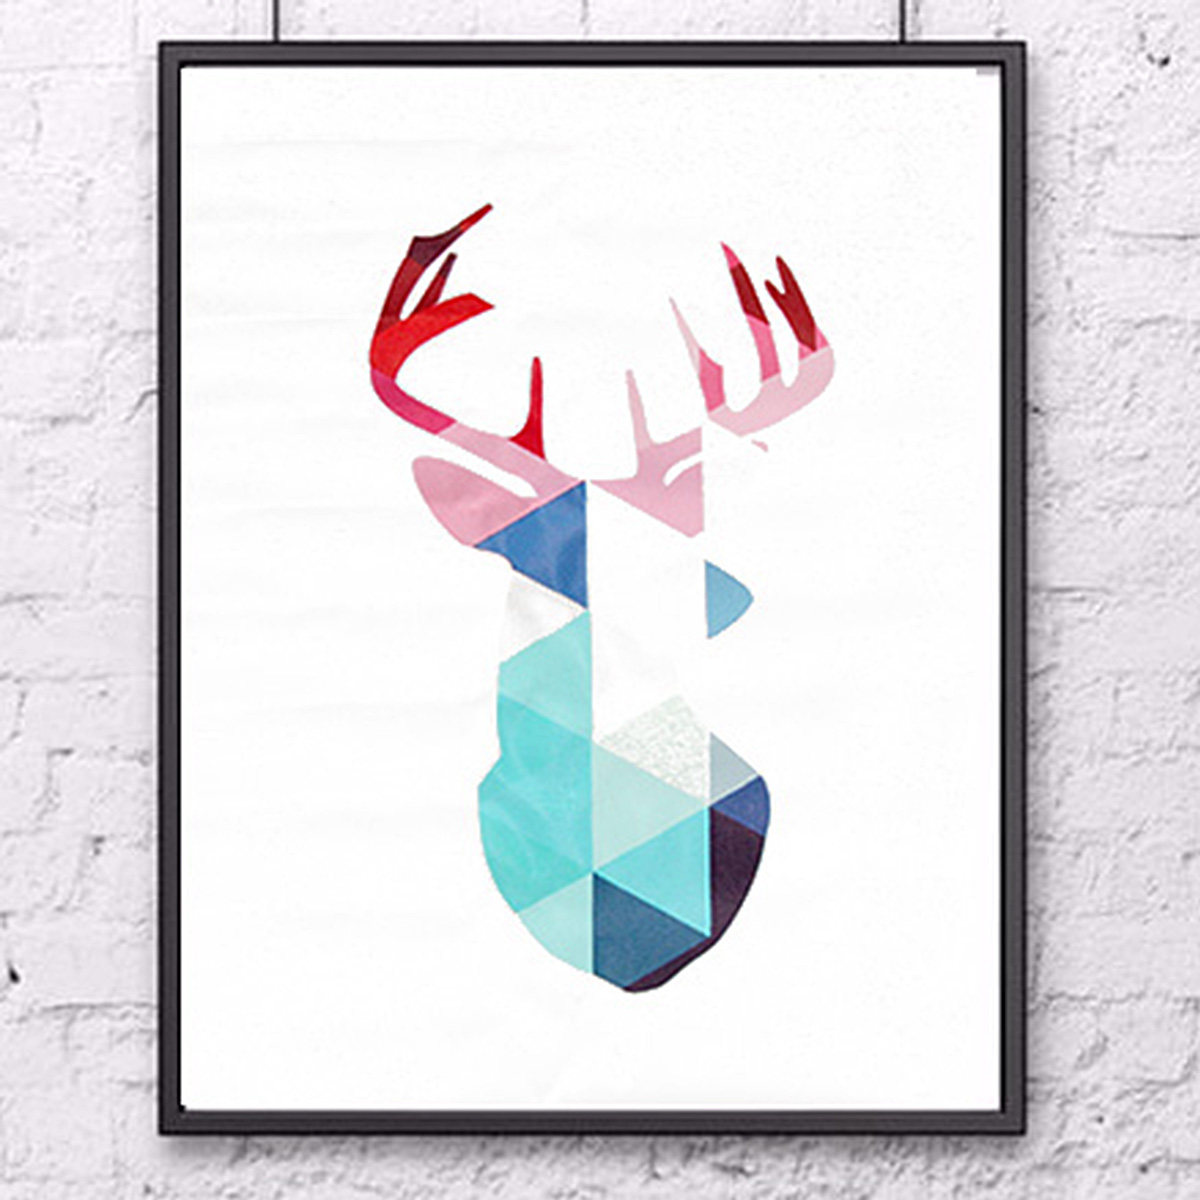 Geometric Coral Deer Frameless Canvas Prints Wall Art Picture Home Decoration